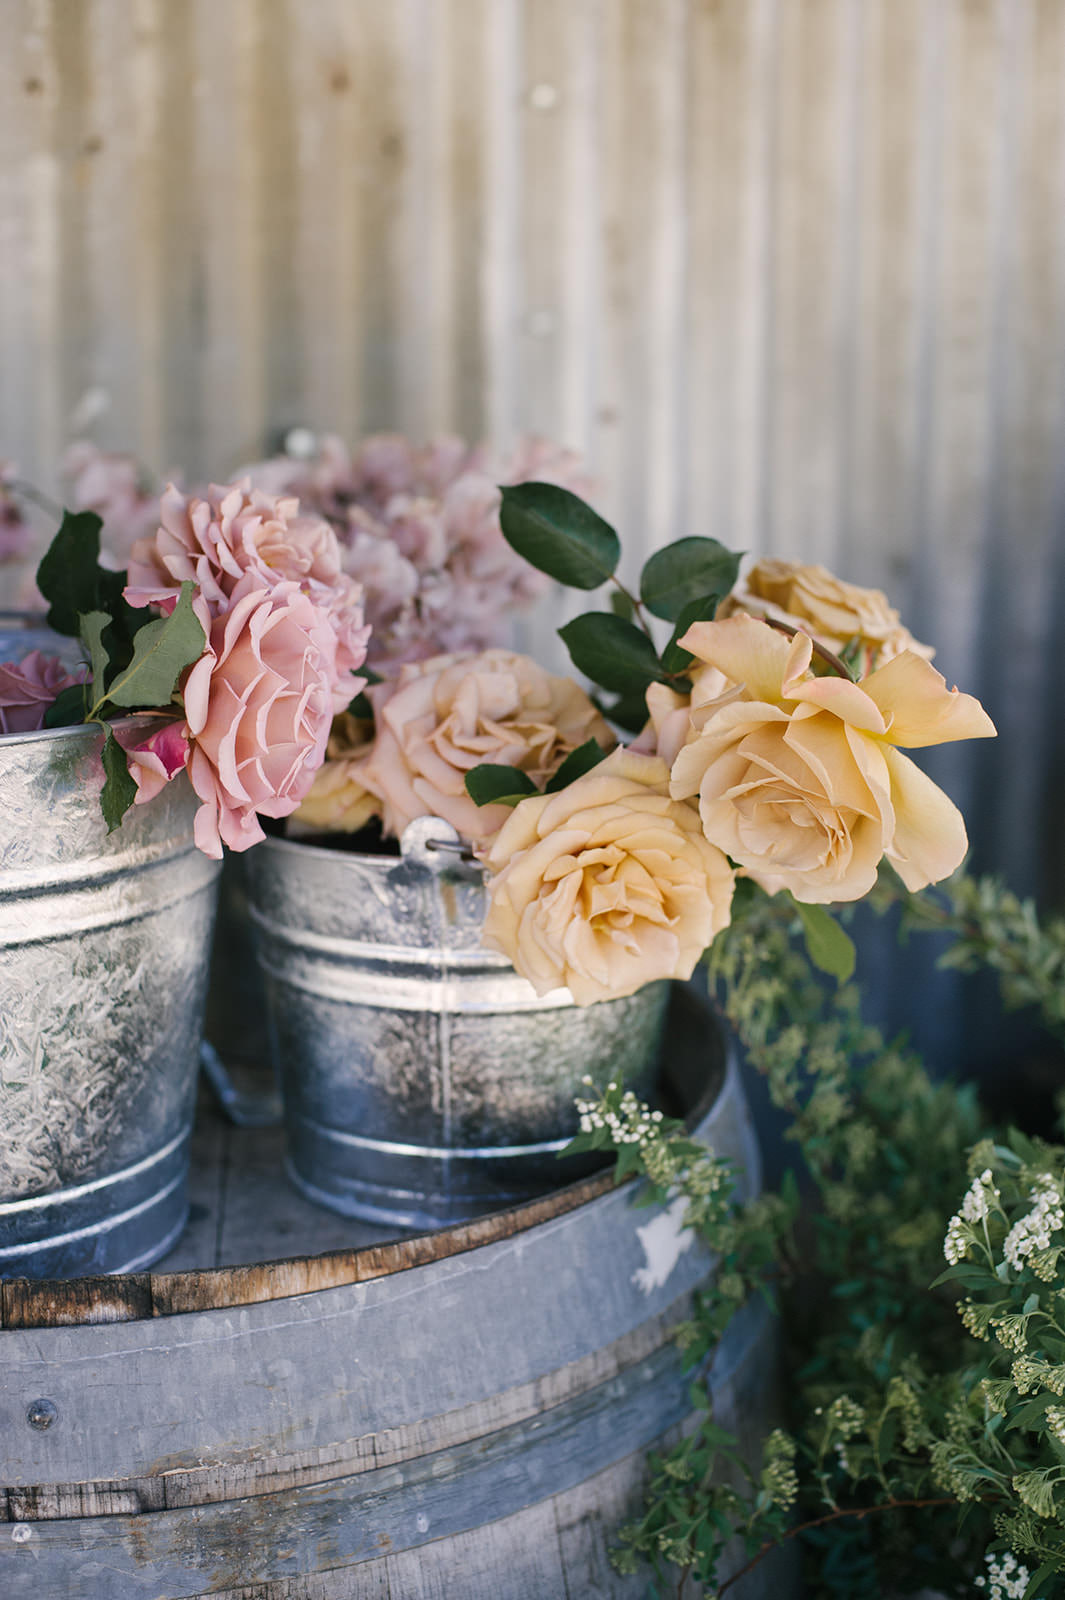 Garden roses in bucket at farmstead | Floral arranging class with Sarah Winward at Folded Hills Ranch for Pacific Natural with Jenni Kayne!